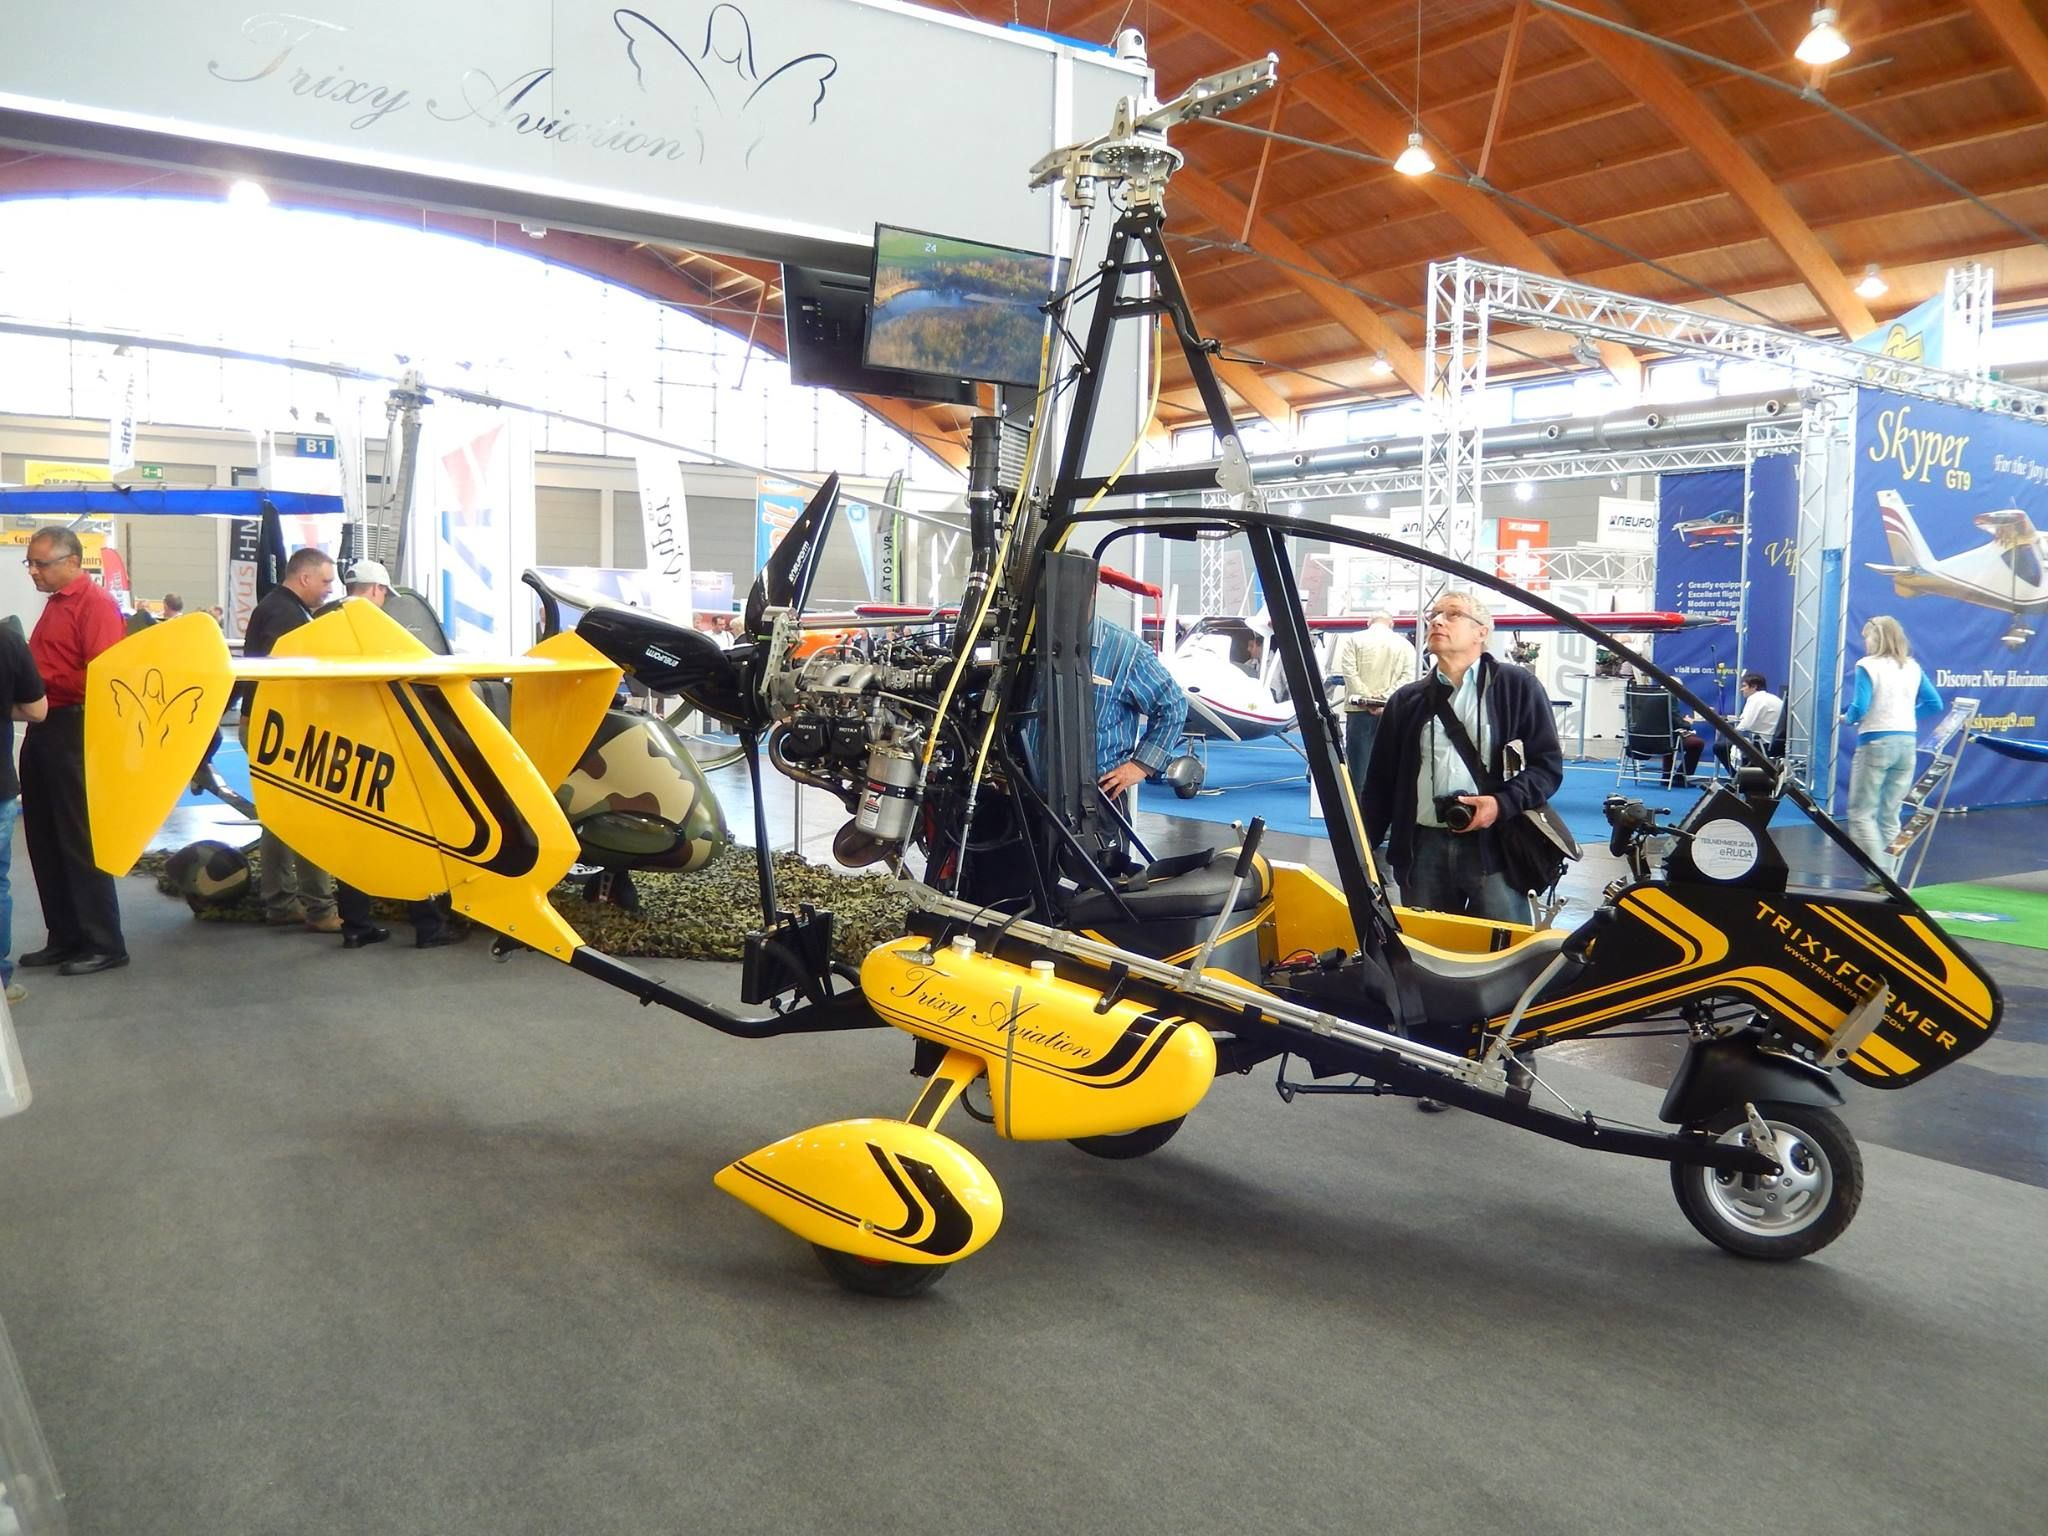 TrixyFormer an electric motorcycle/gyrocopter for two